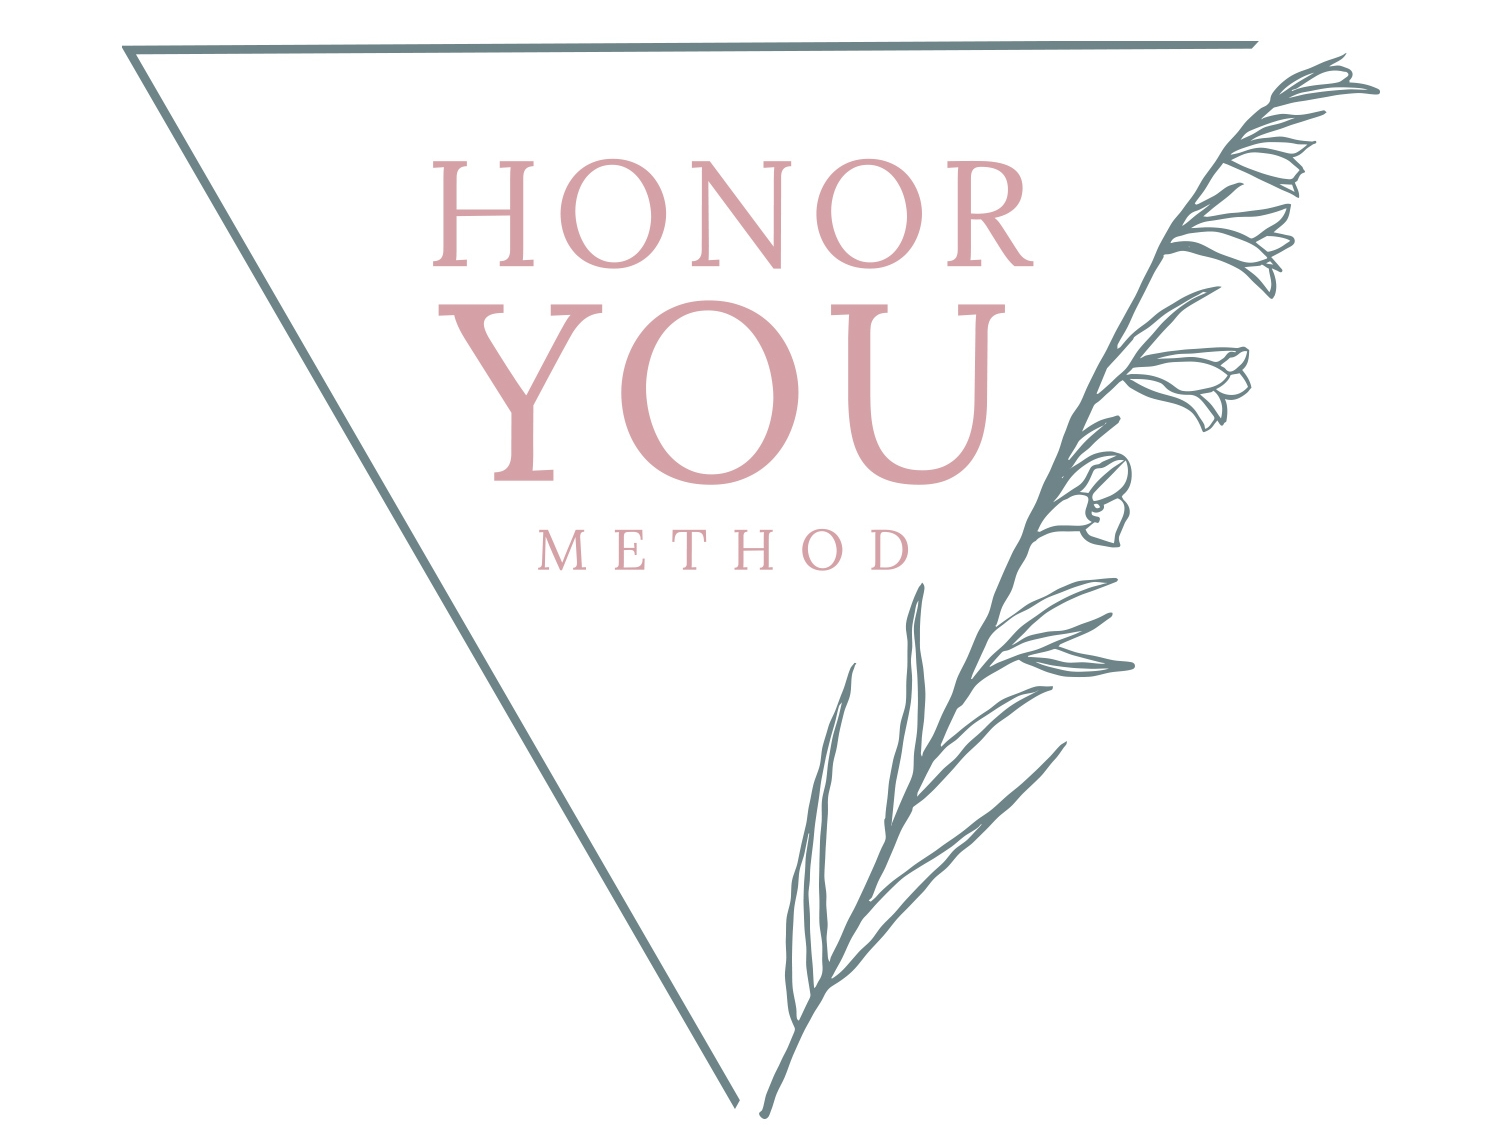 Honor YOU Method | Lisa Kuzman Coaching | Self-Care & Wellness Coach, Therapist, and Mentor